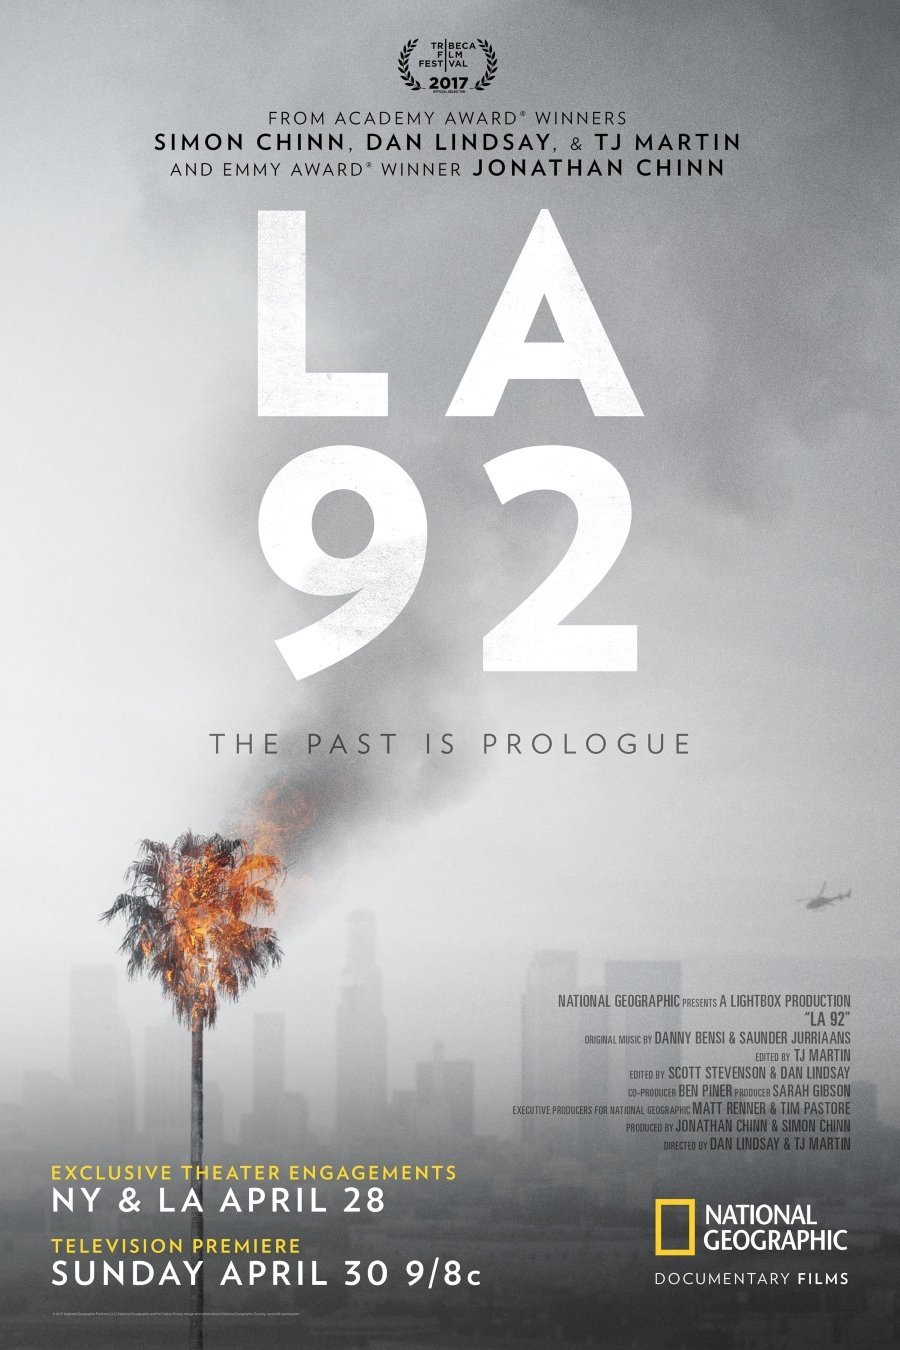 Documentaries on Racism / Cover of LA 92